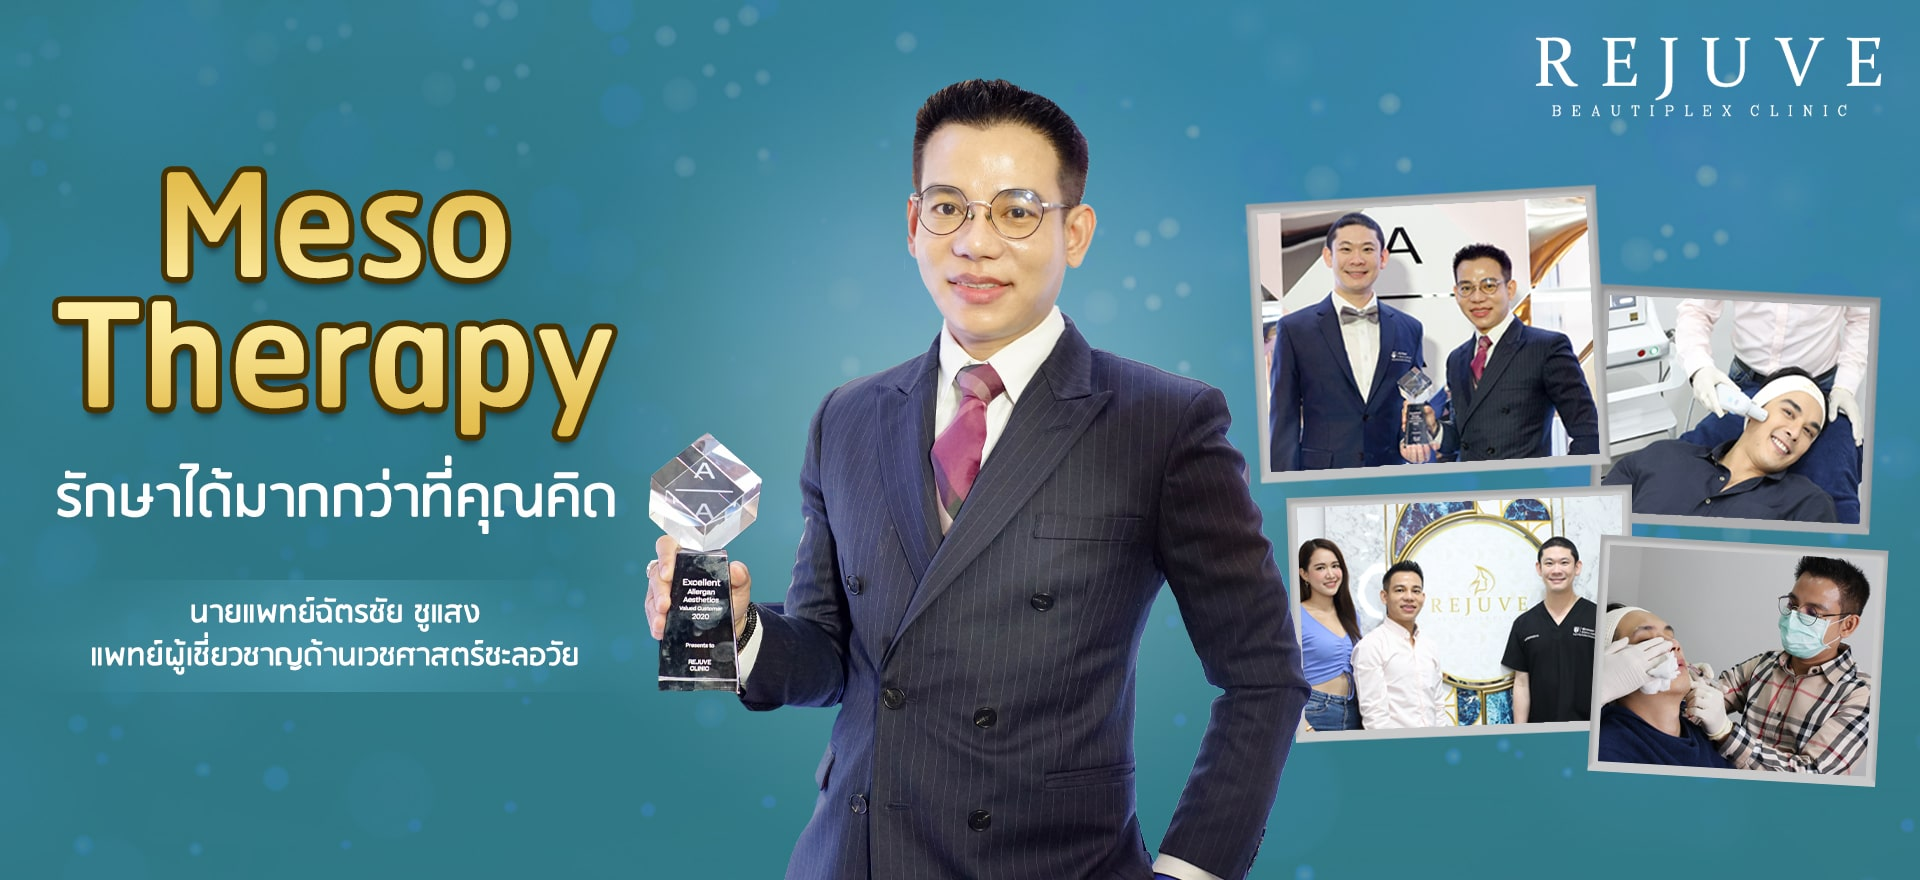 Meso Therapy เมโสหน้าใส - First Clinic